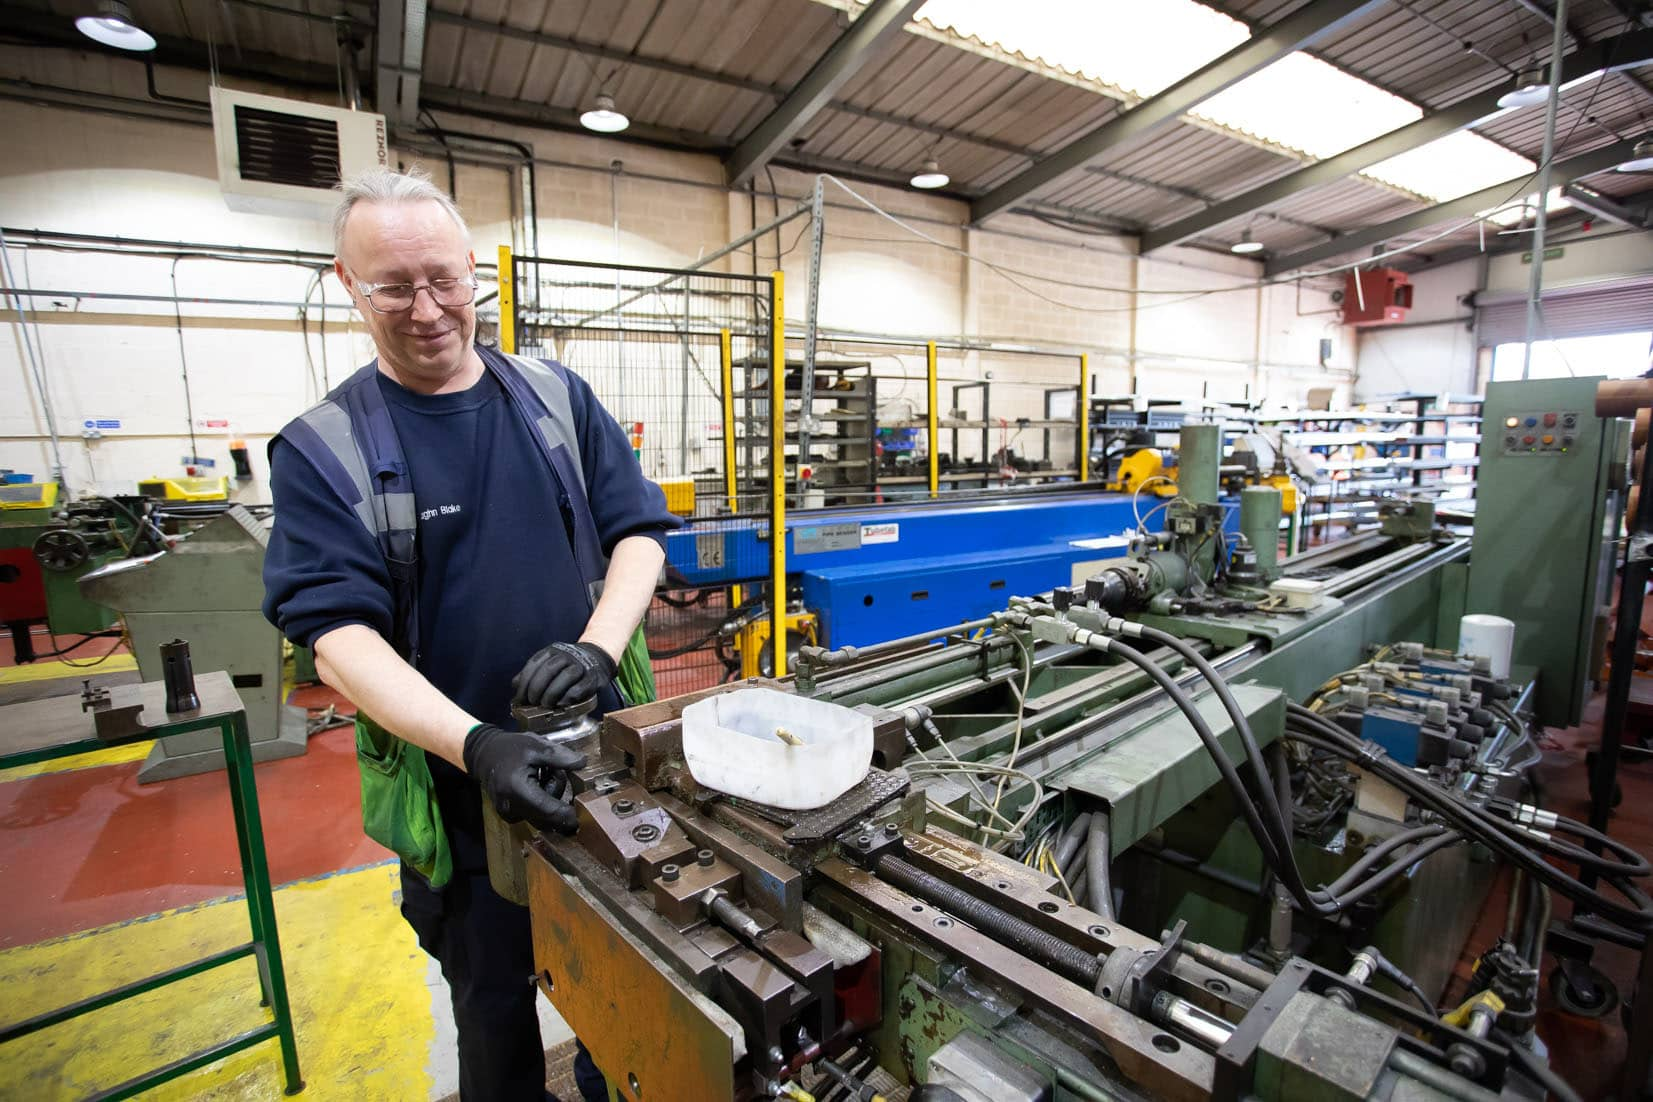 Barometer asks East Midlands manufacturing SMEs to explore supply chain price changes and raw material issues